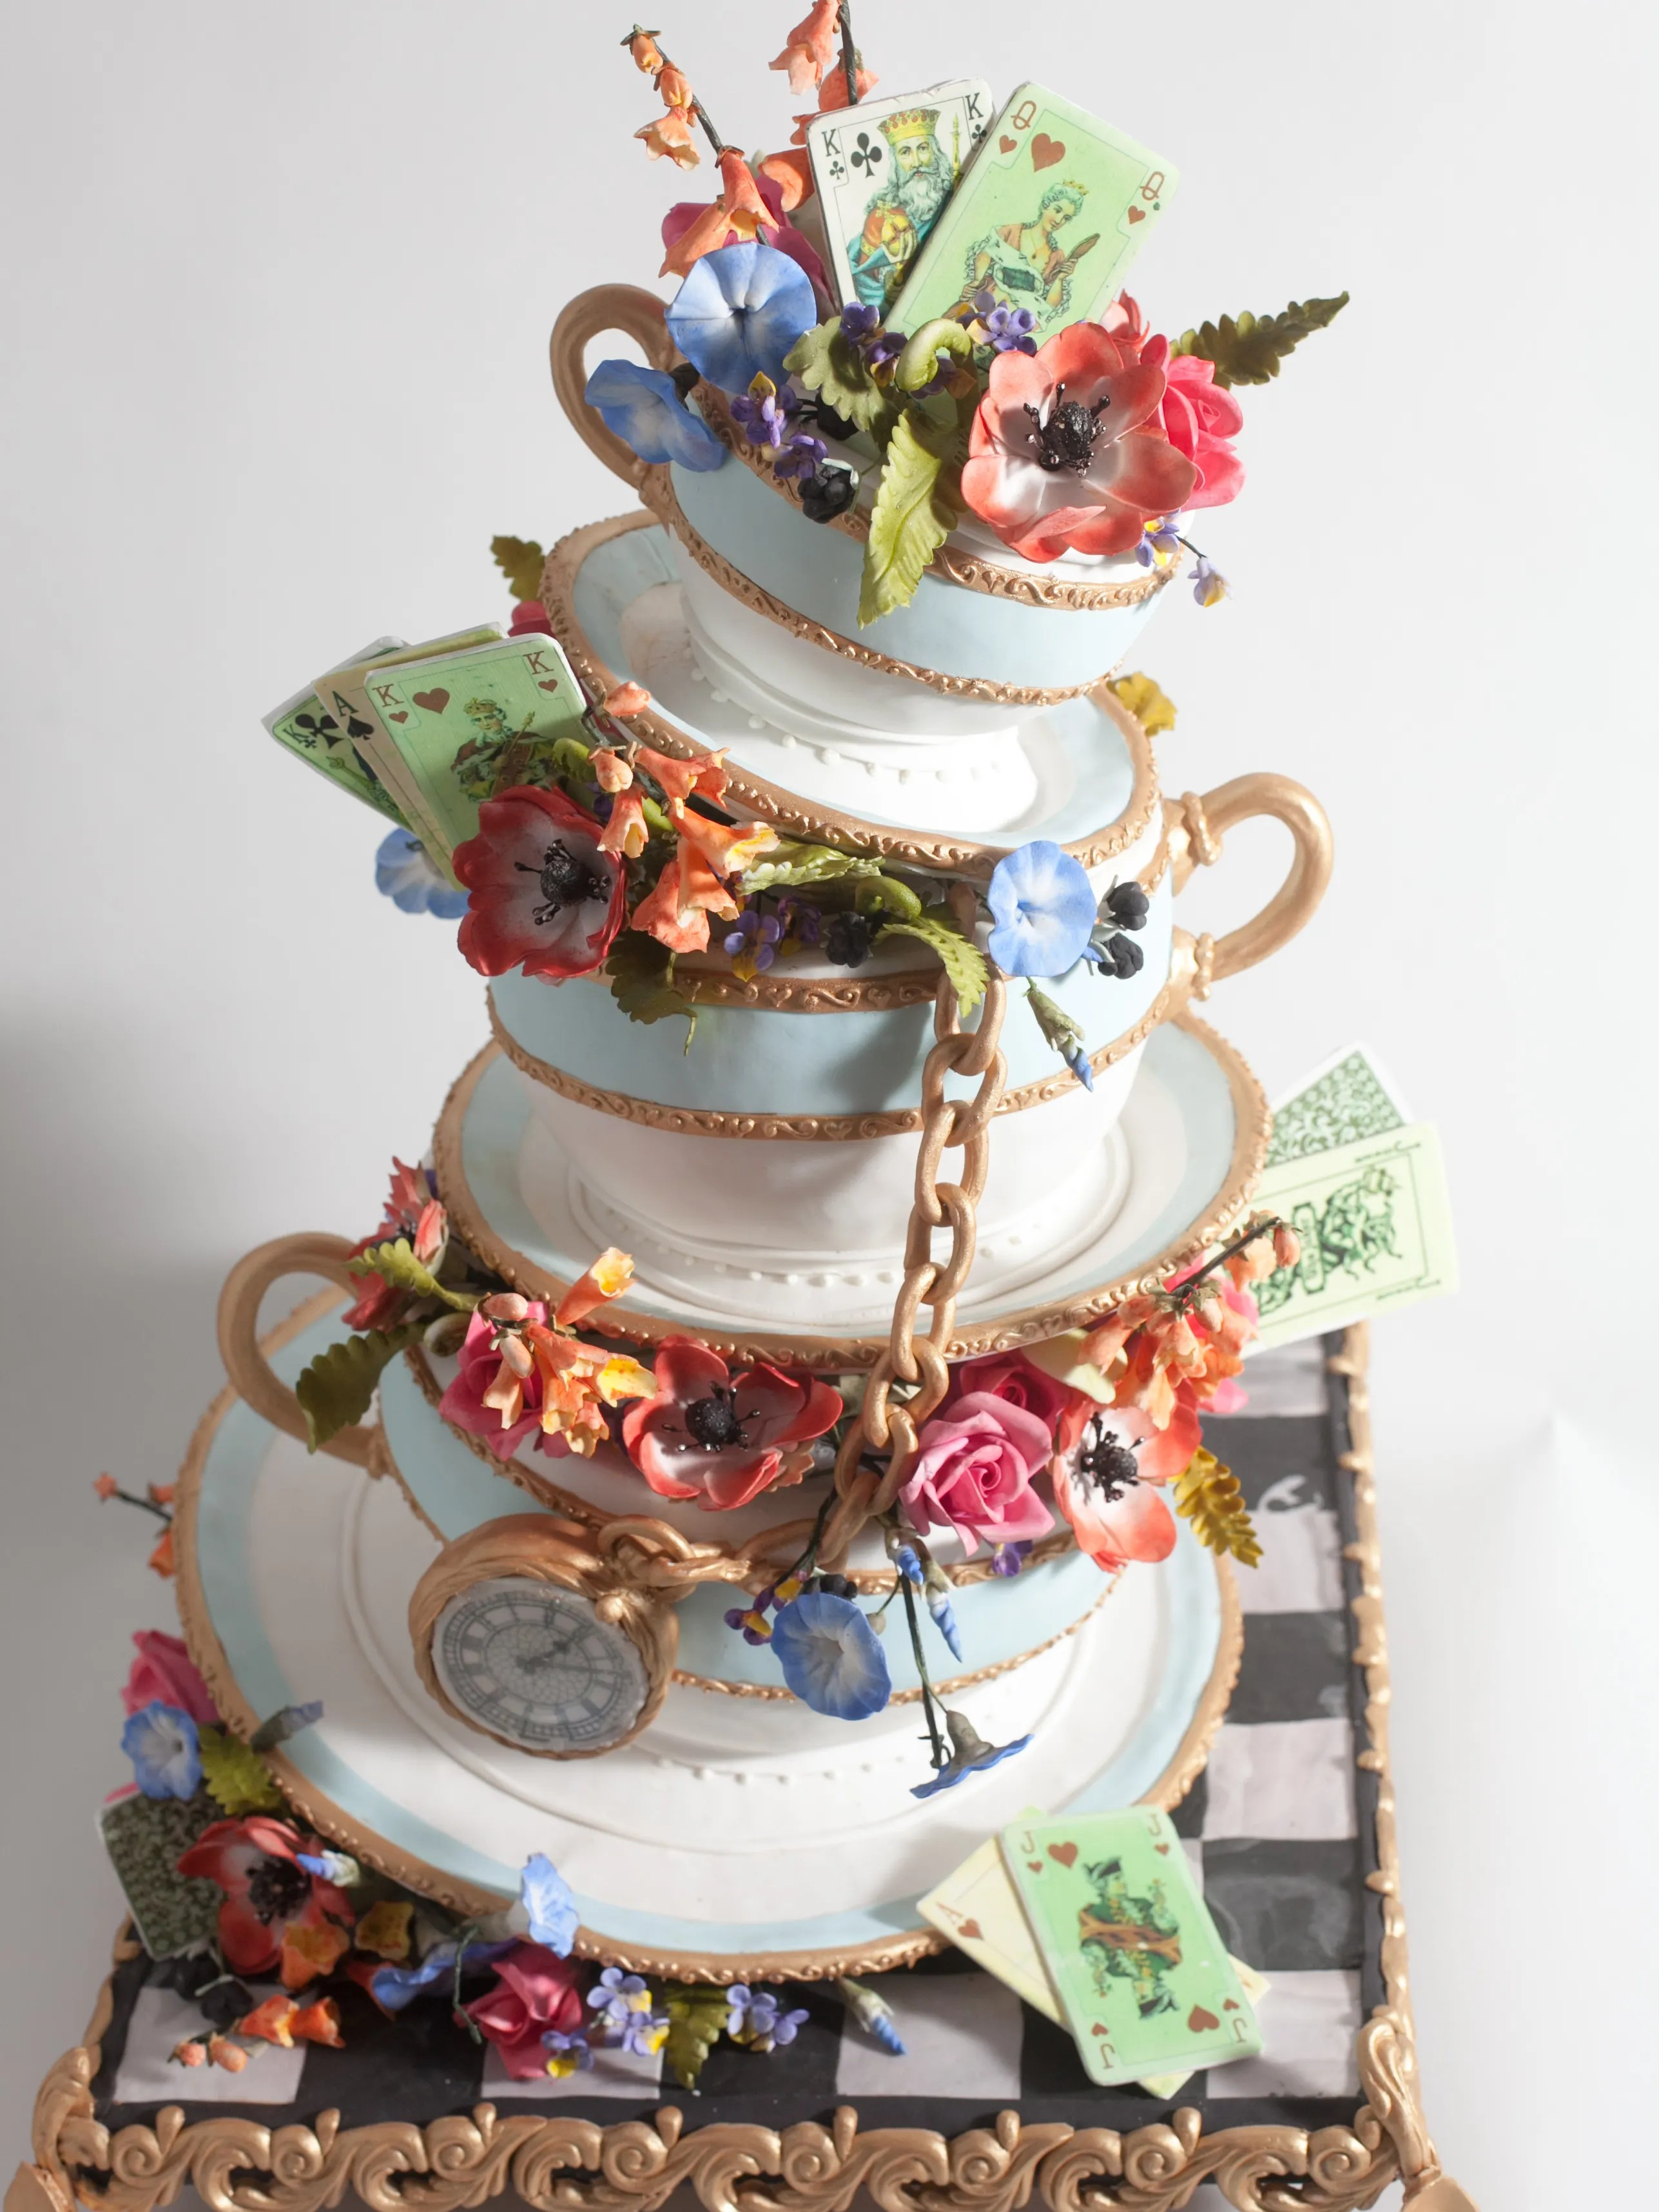 Getting hitched  10 bakeries for wedding cakes in metro Phoenix Wedding cakes   KAK Shop